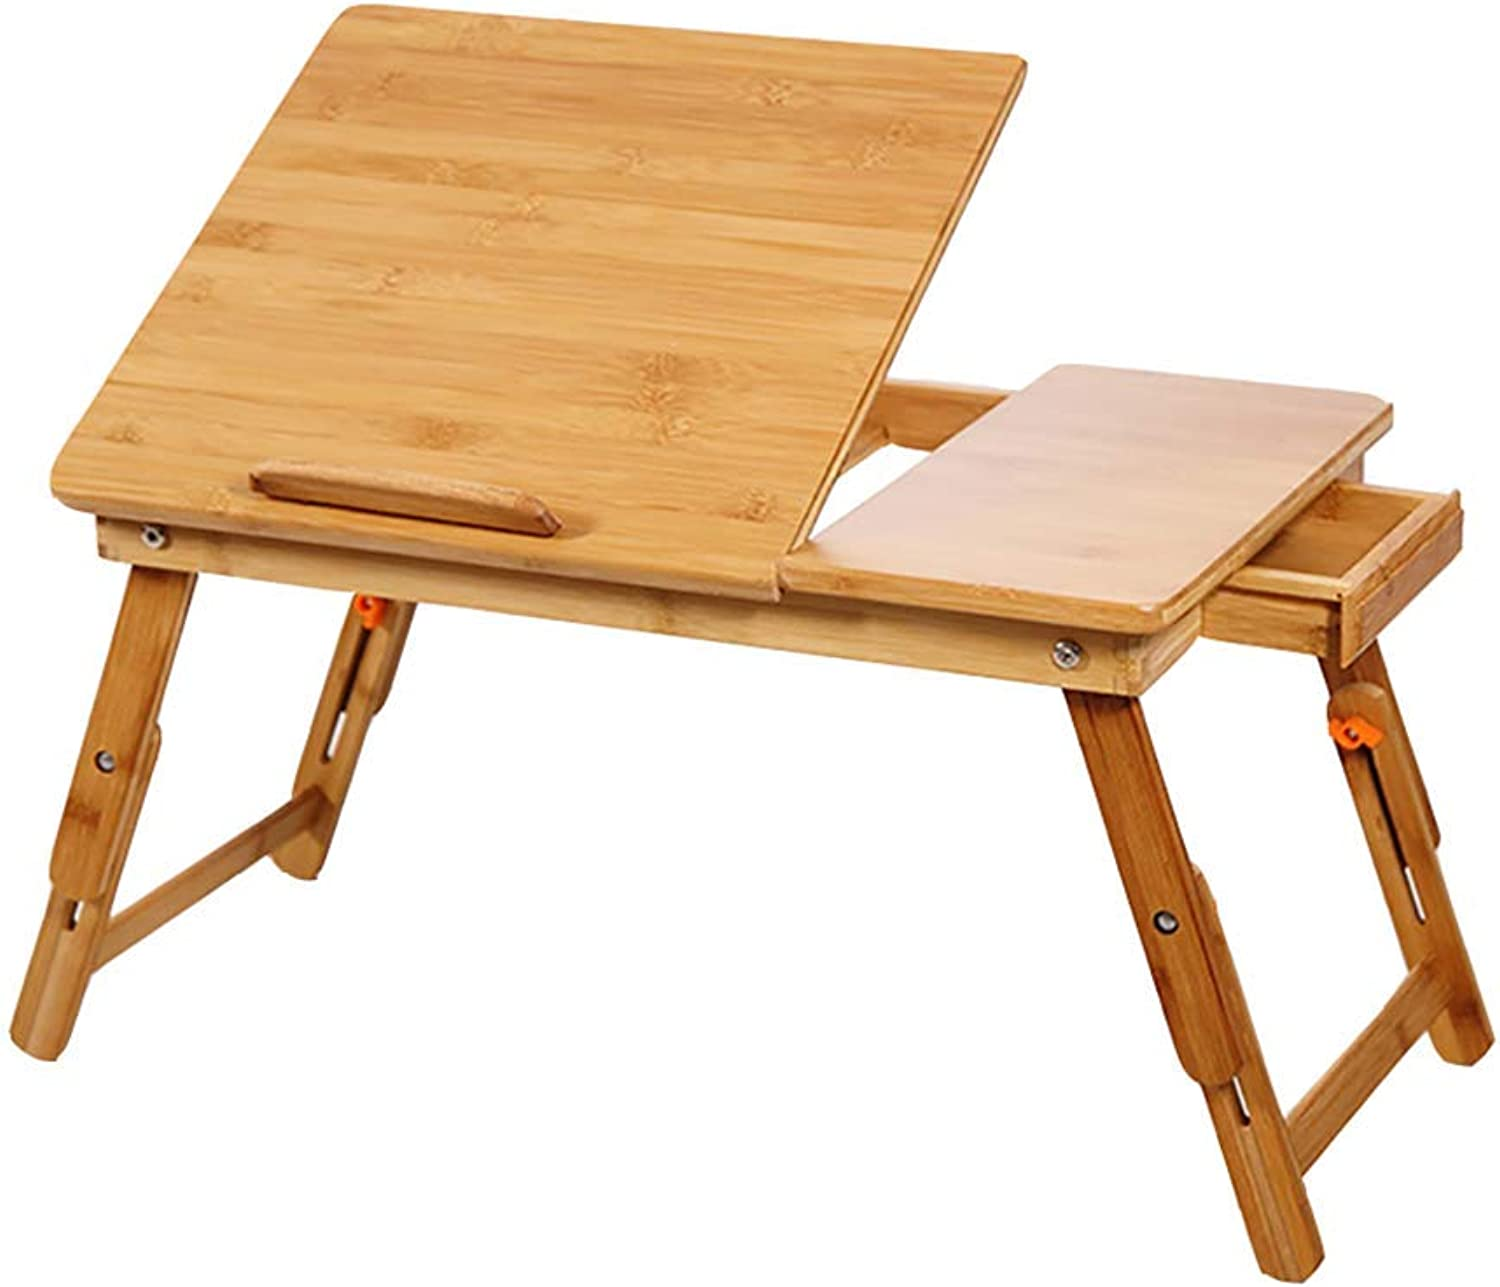 LiTing-Folding Table Laptop to Do Table Bed with Folding